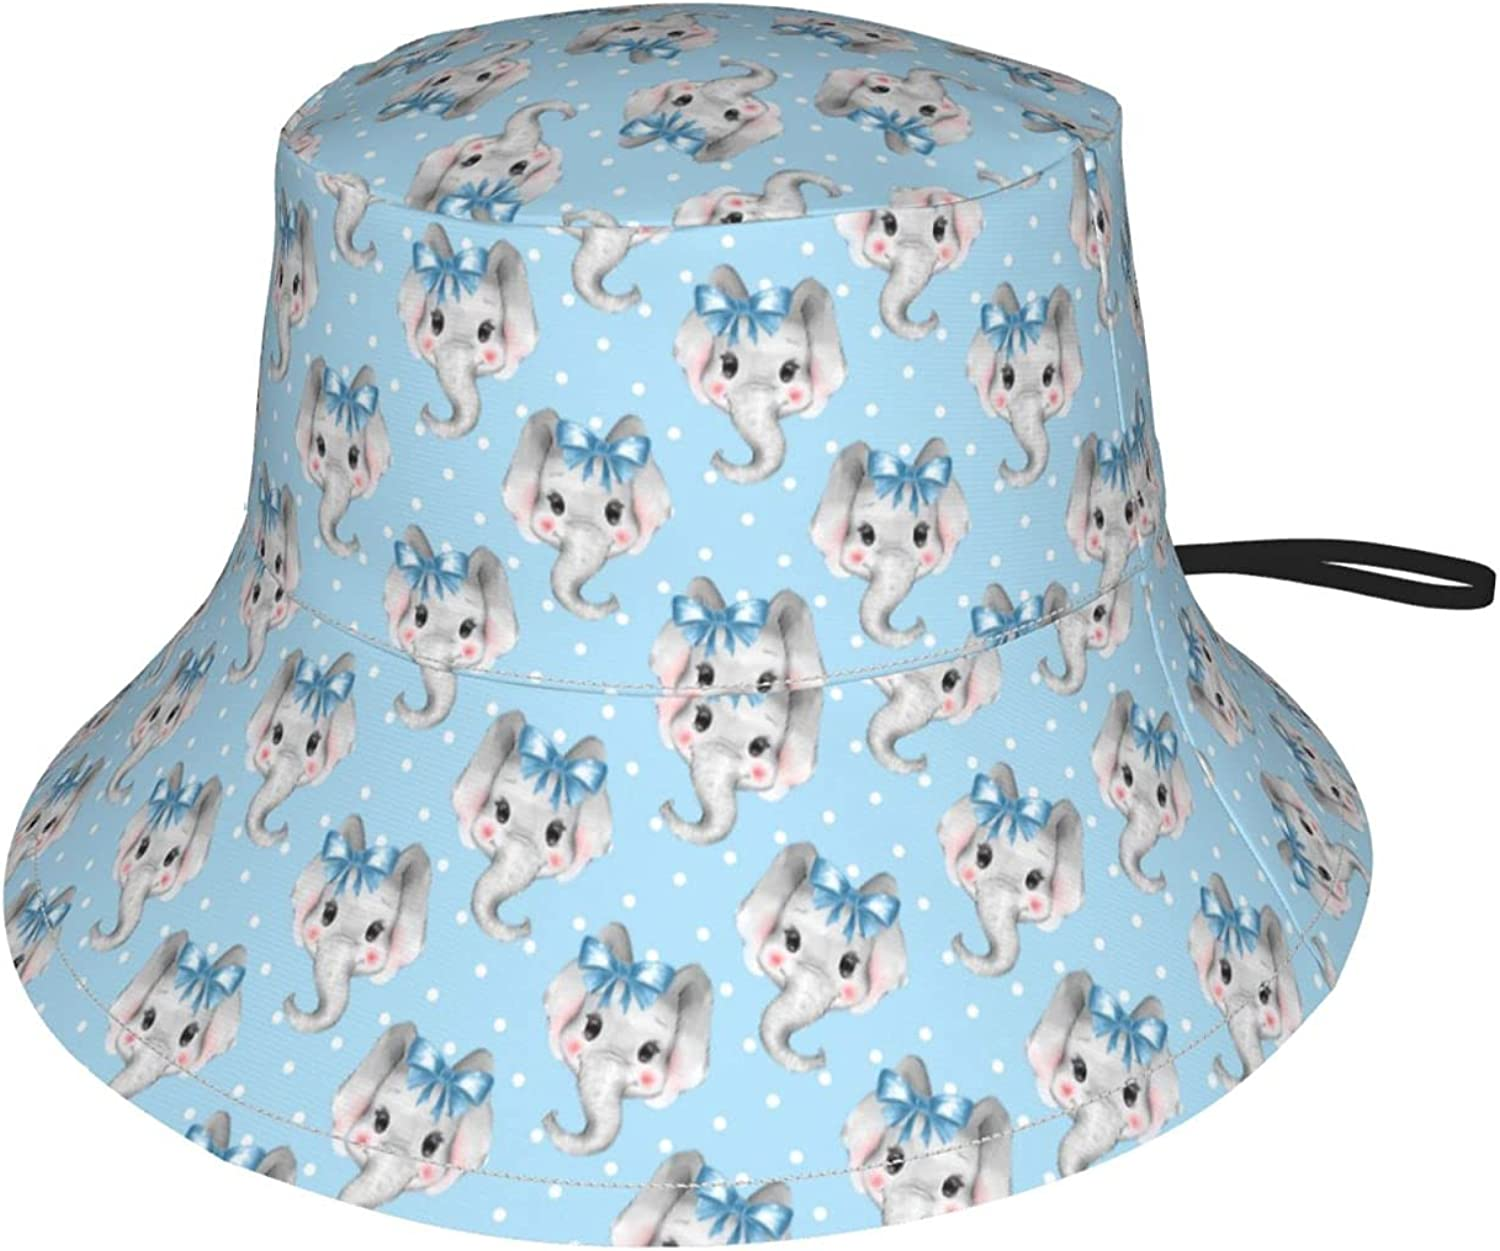 Jedenkuku Limited Special Price Blue Bow with Elephant Dot Polka Face Children's Fort Worth Mall